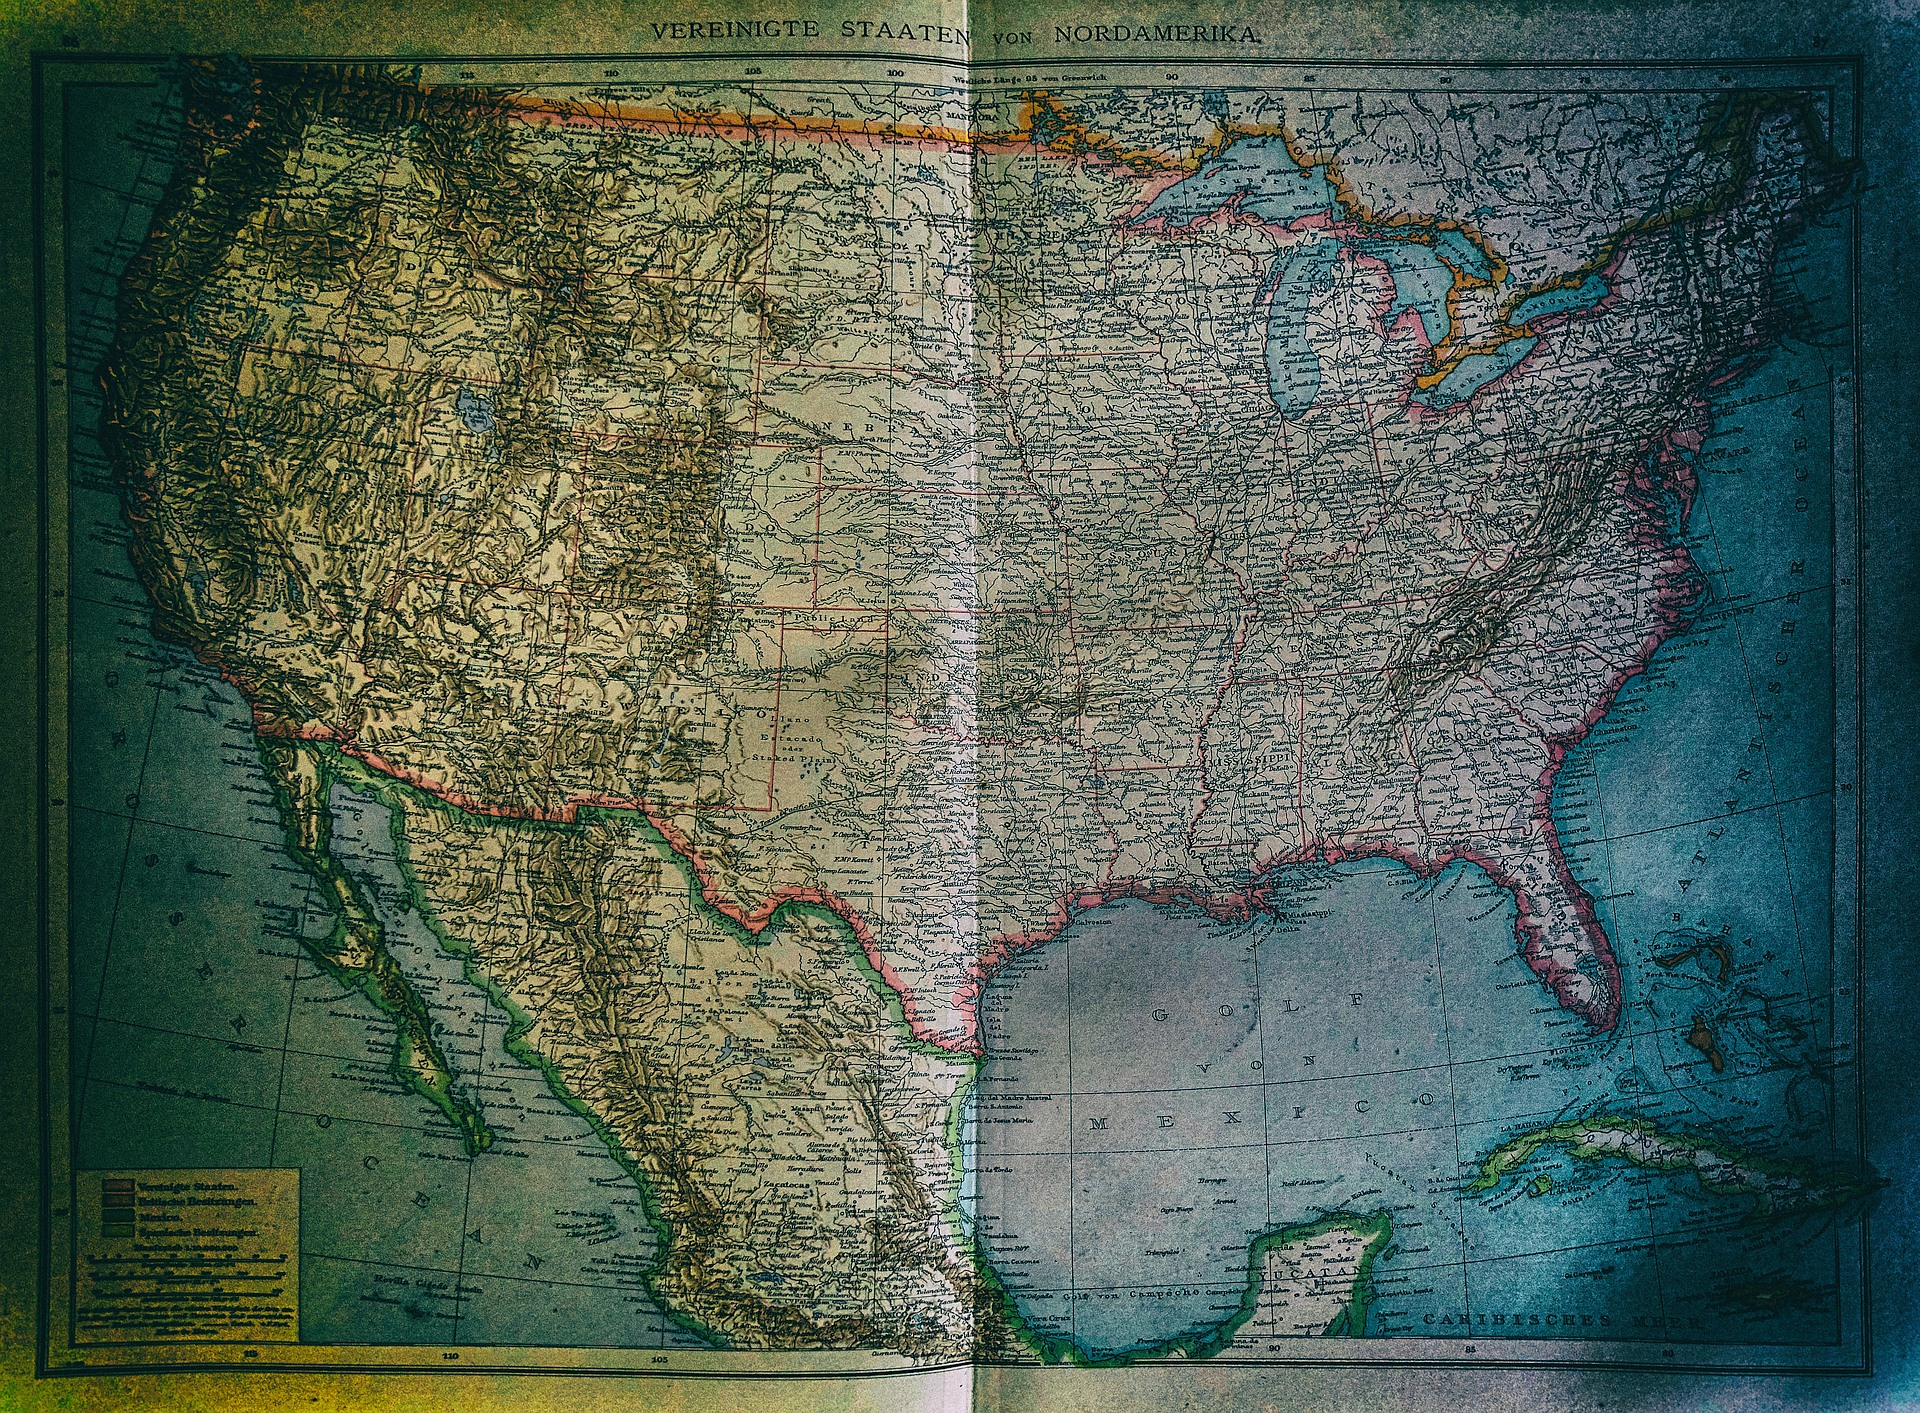 In America in the 1880s there was not only the United States of North America, there was also a federal state of its own called Public Land, at least according to the Andrees Handatlas from Germany.